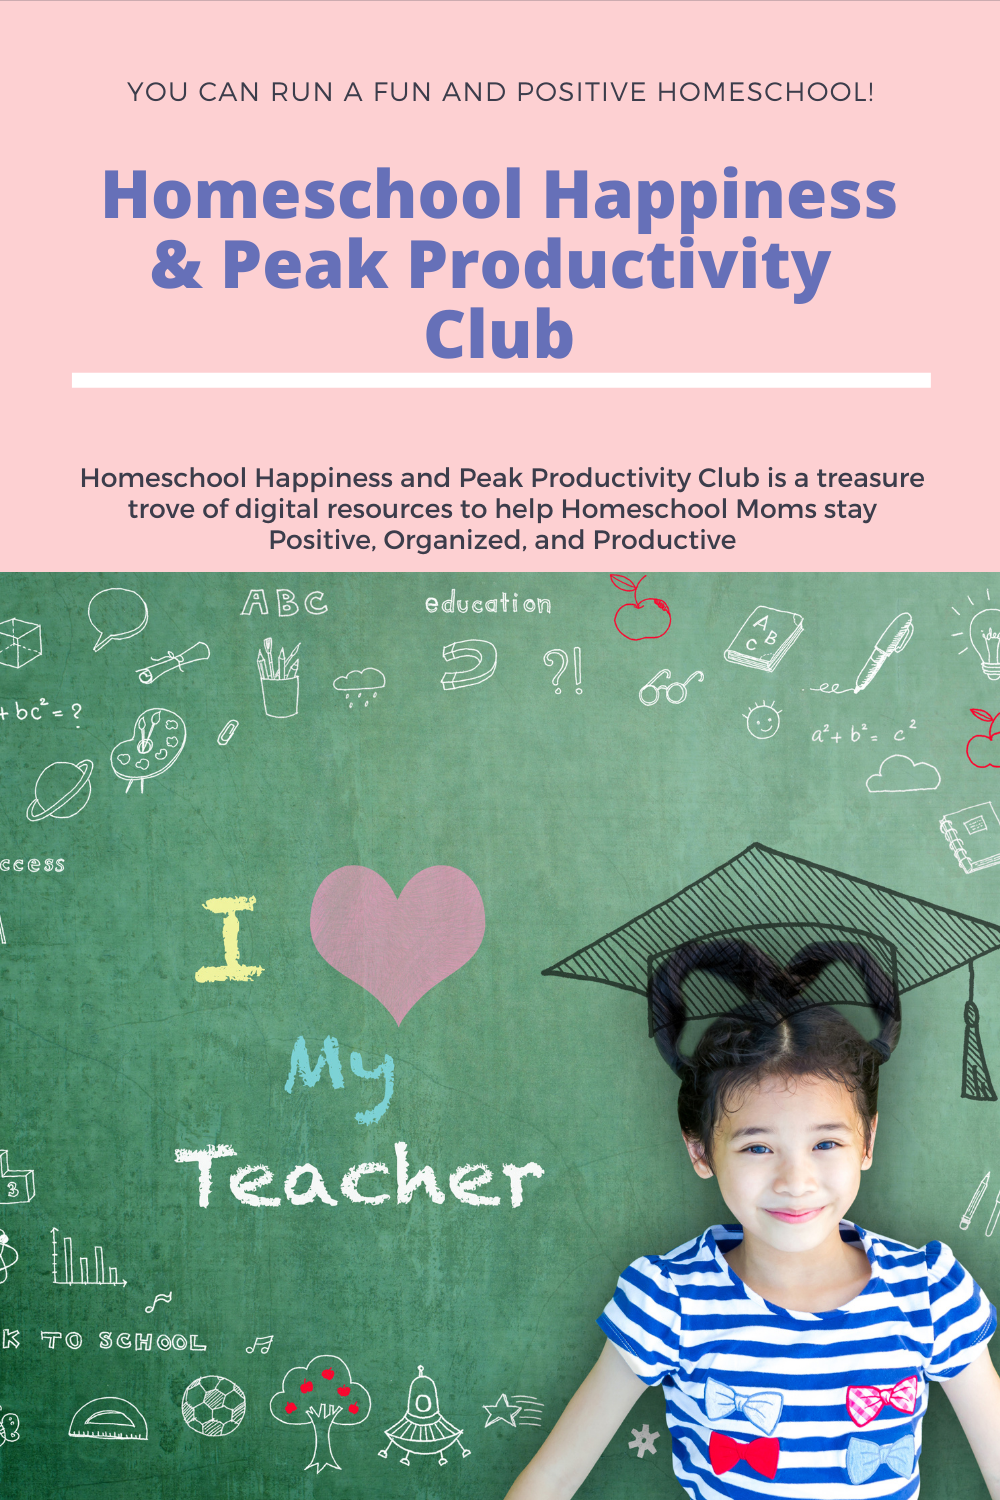 Homeschool Happiness and Peak Productivity Club